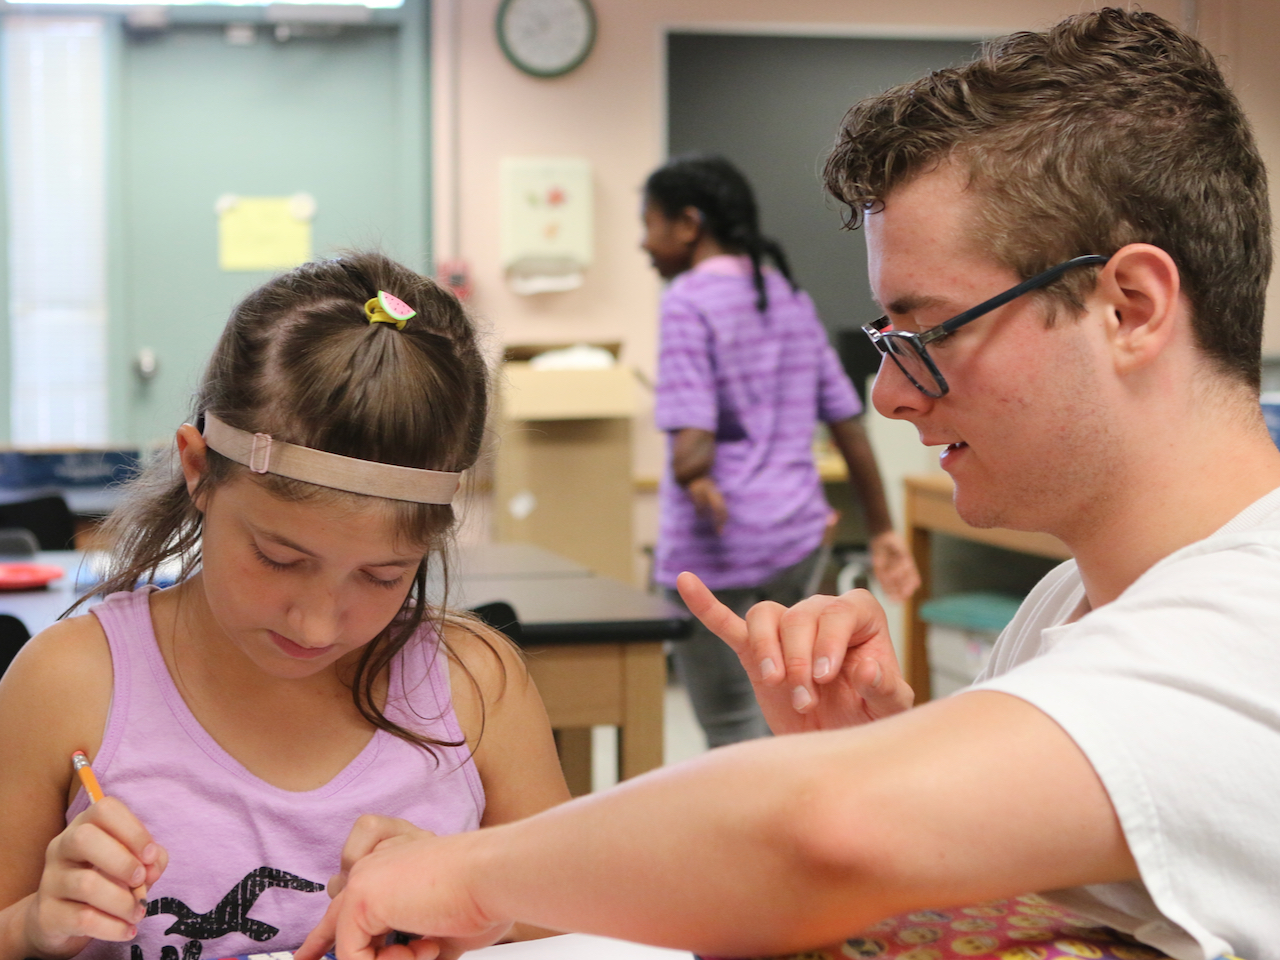 A camp counselor helps a student with an activity at the 2019 Deaf Science Camp